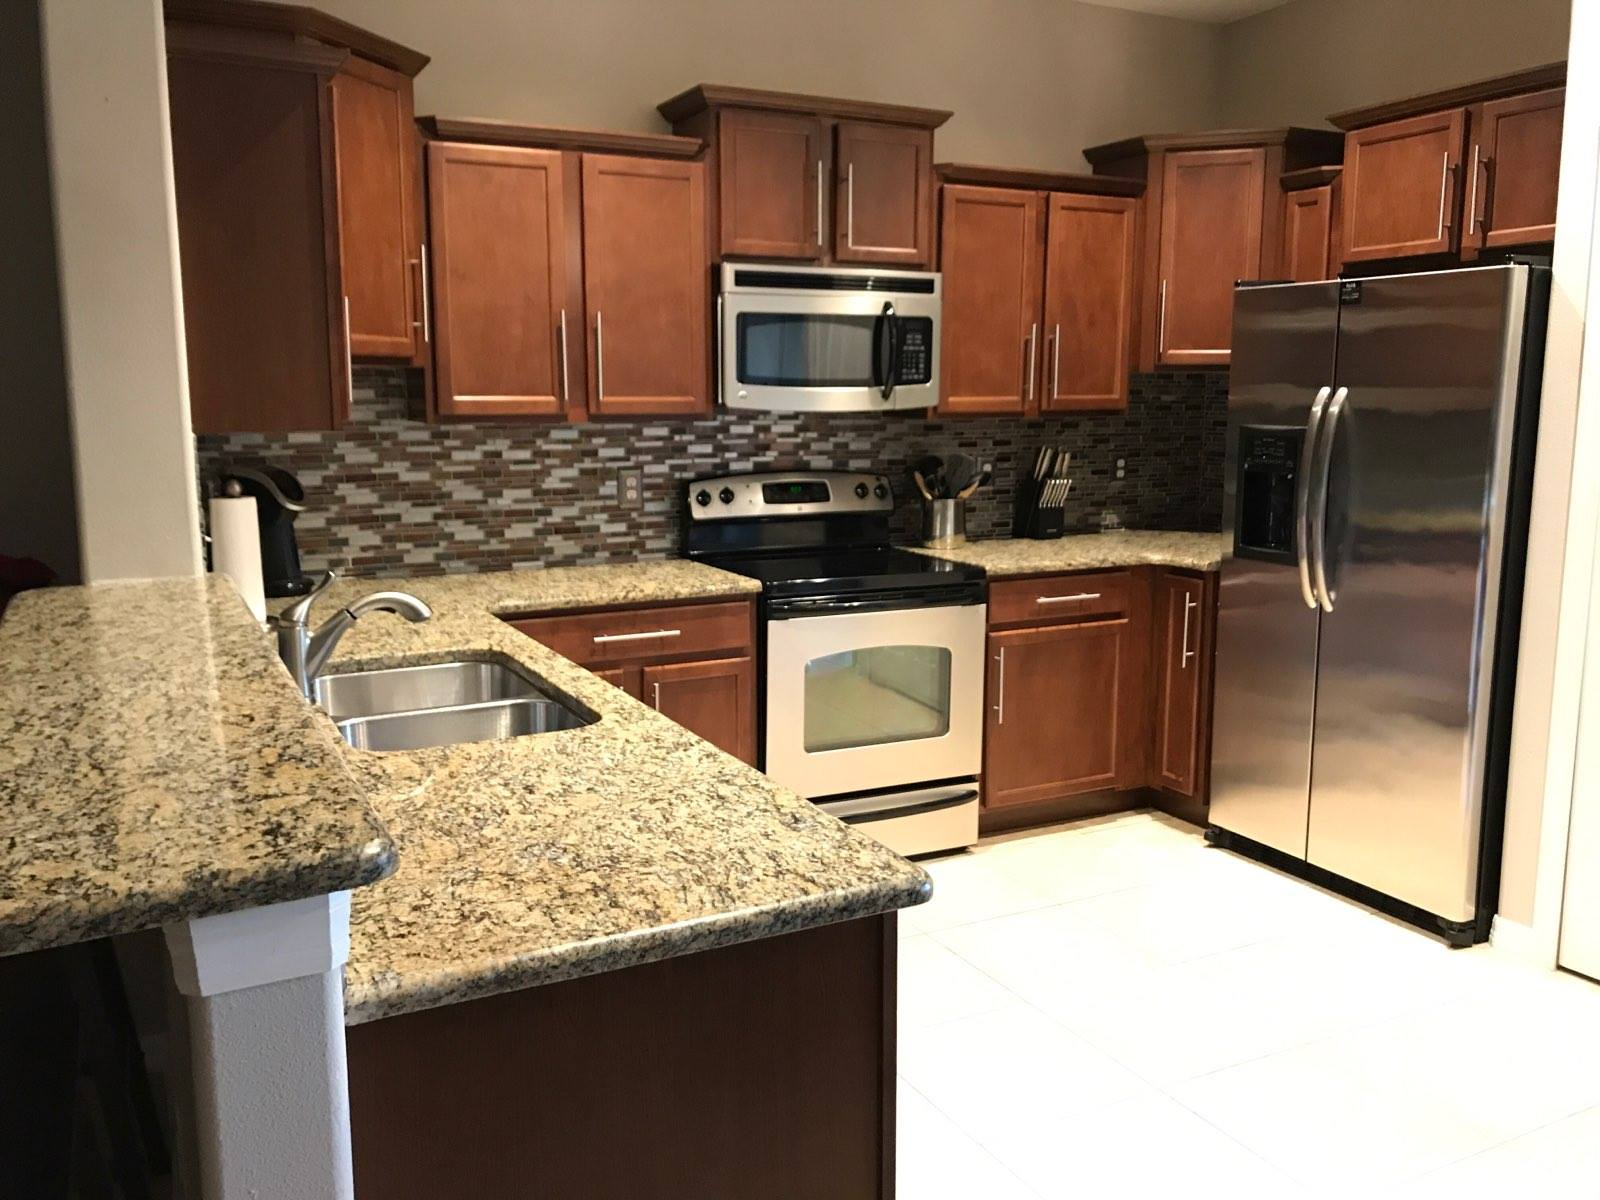 just-listed-brandon-pointe-florida-sheryl-houck-exp-realty